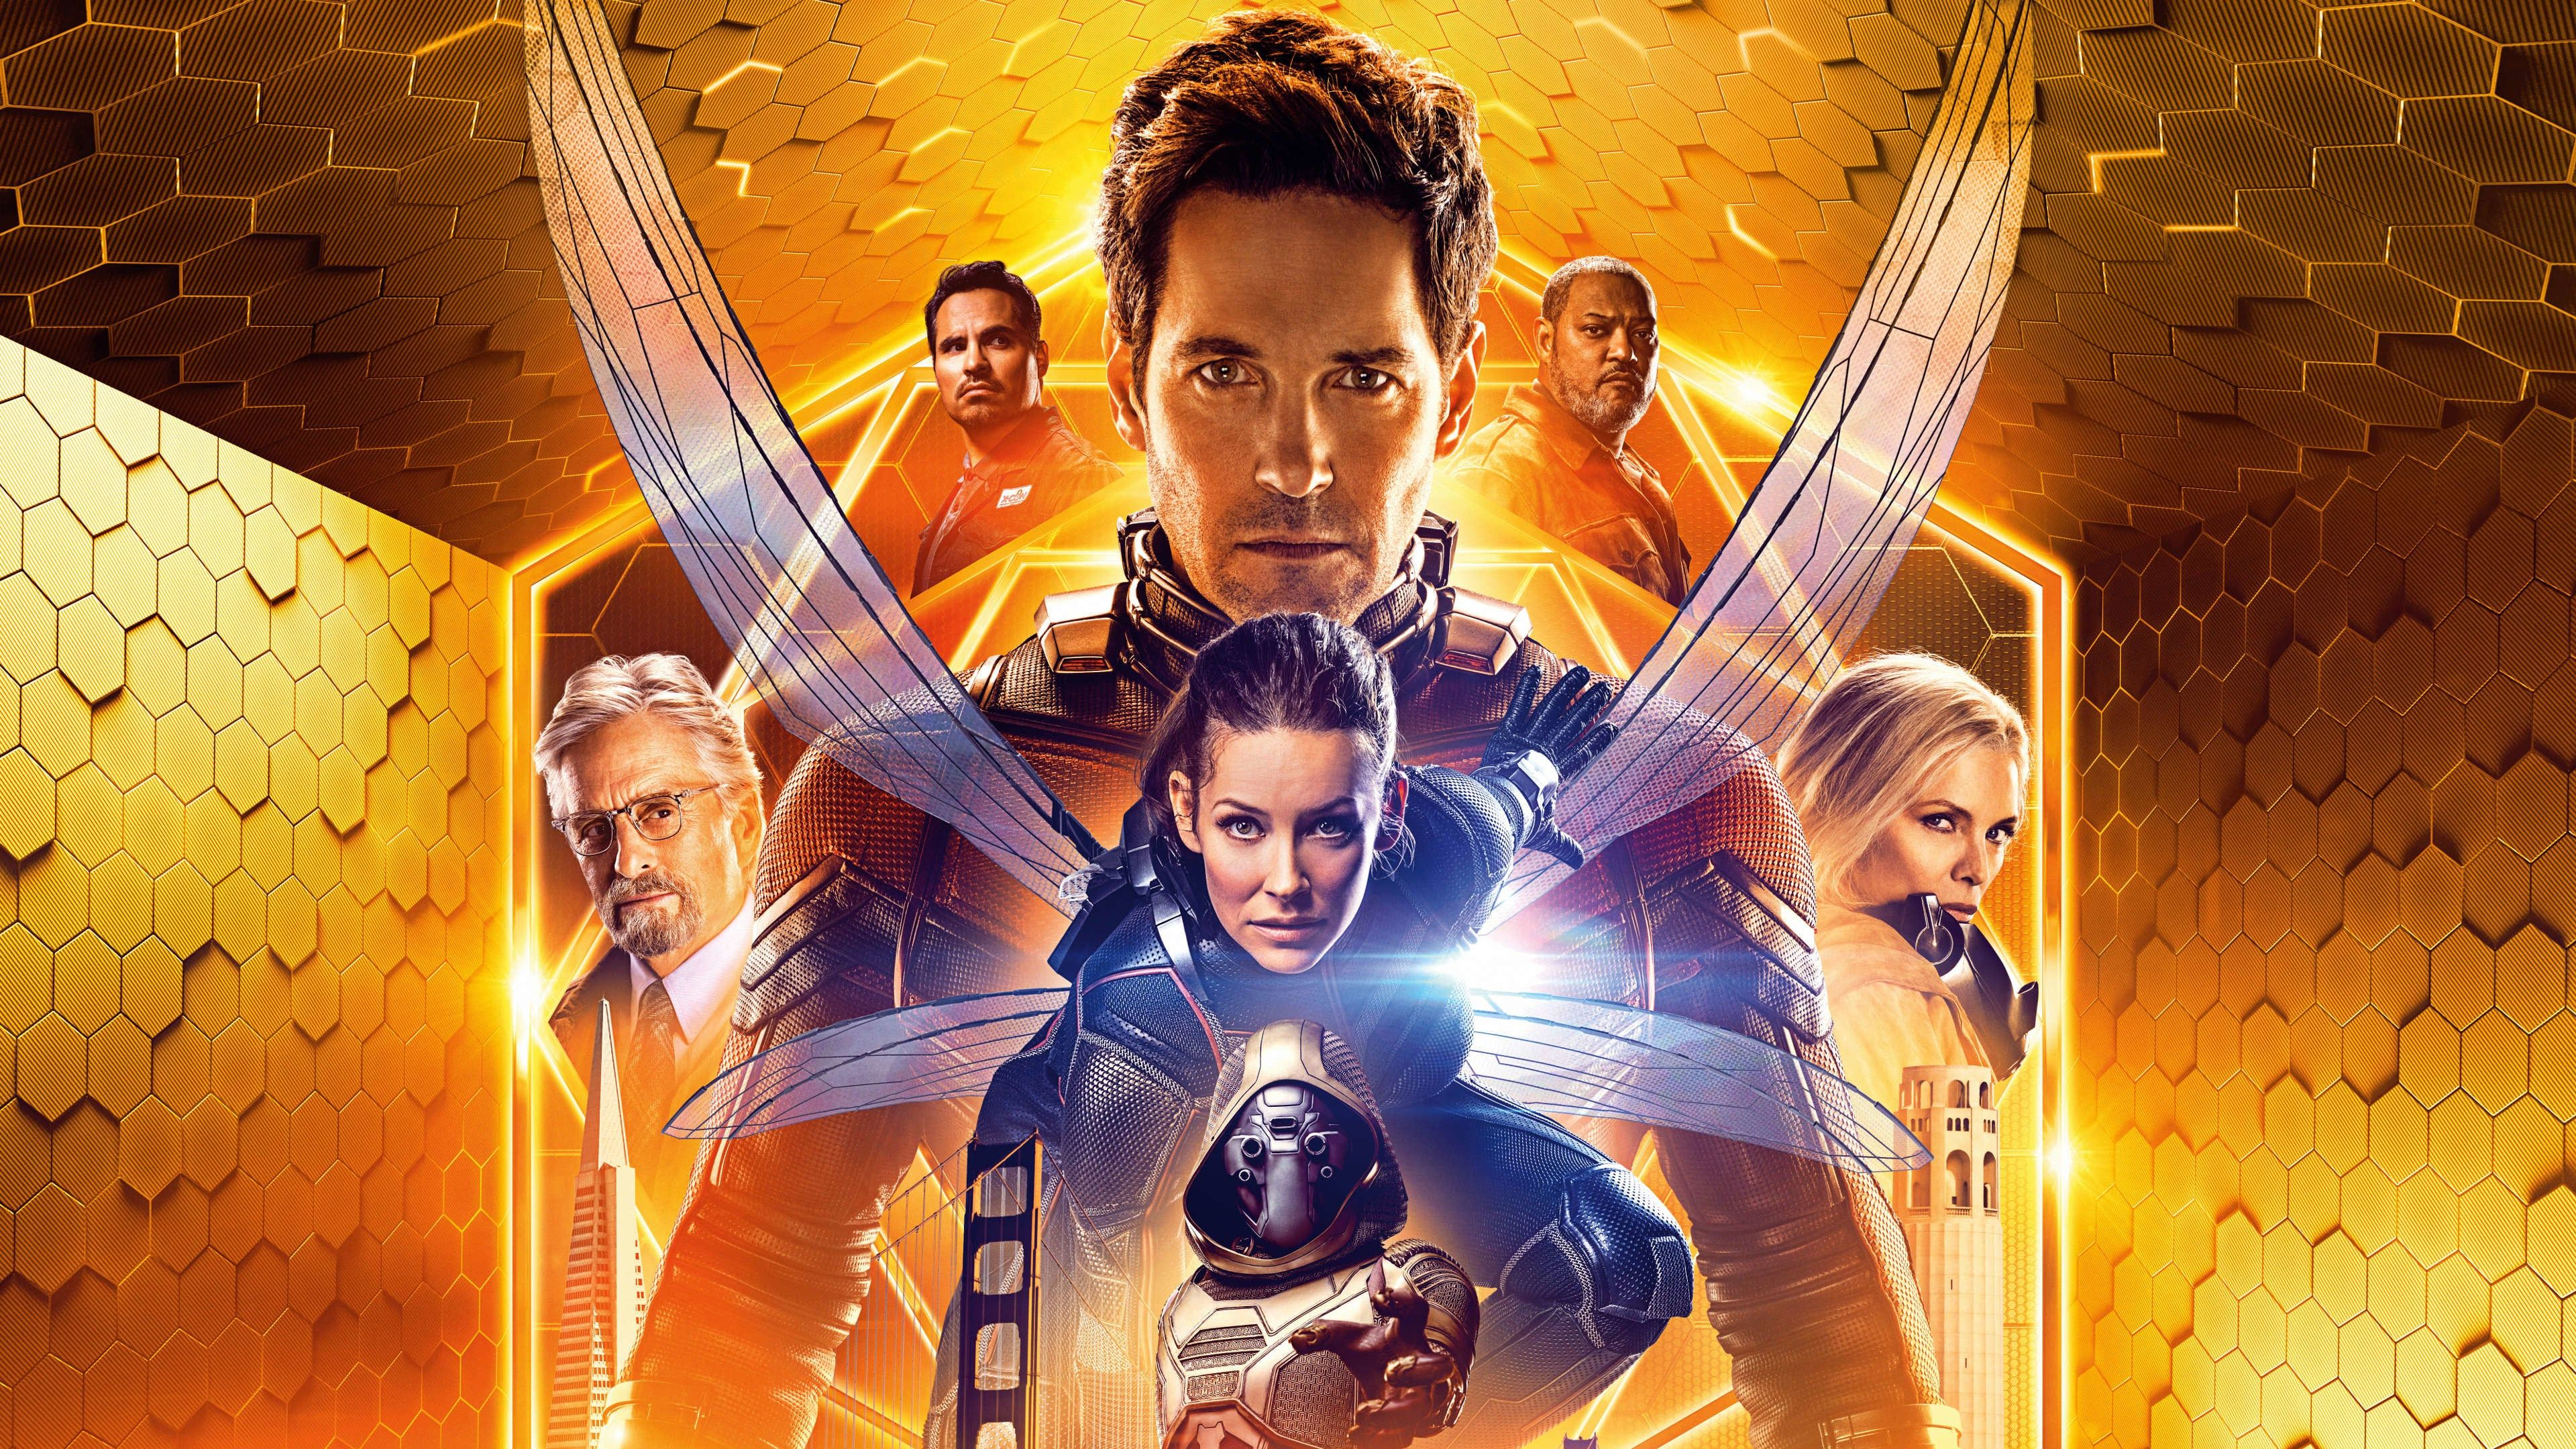 Watch Ant Man And The Wasp 2018 Full Movie Online Free As Scott Lang Balances Being Both A Superhero And A Father Ganze Filme Filme Kostenlos Filme Stream